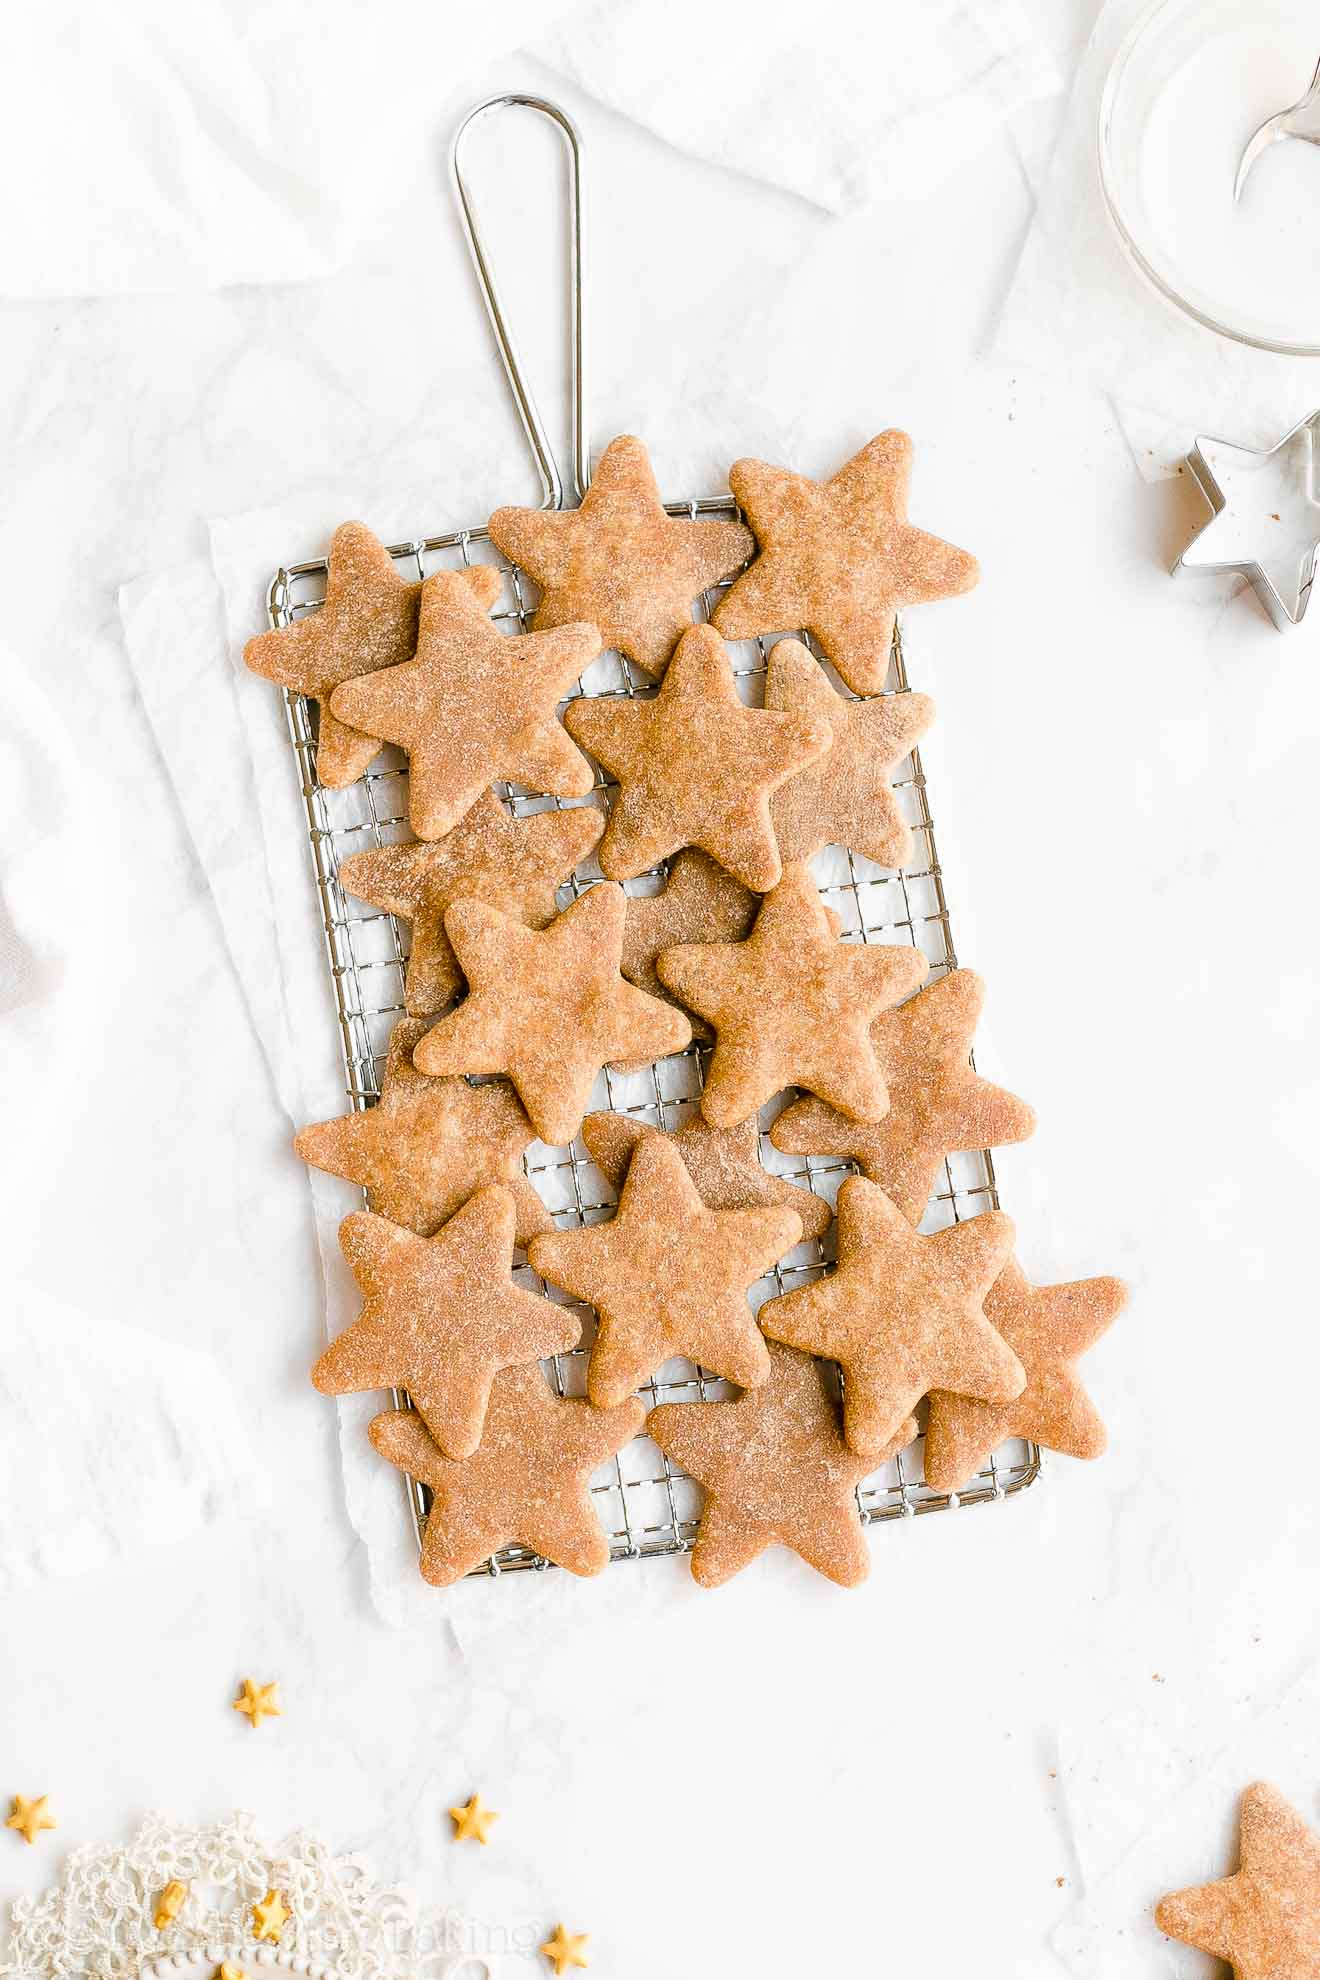 Best Ever Easy Healthy Soft Chewy Cut-Out Eggnog Sugar Cookies